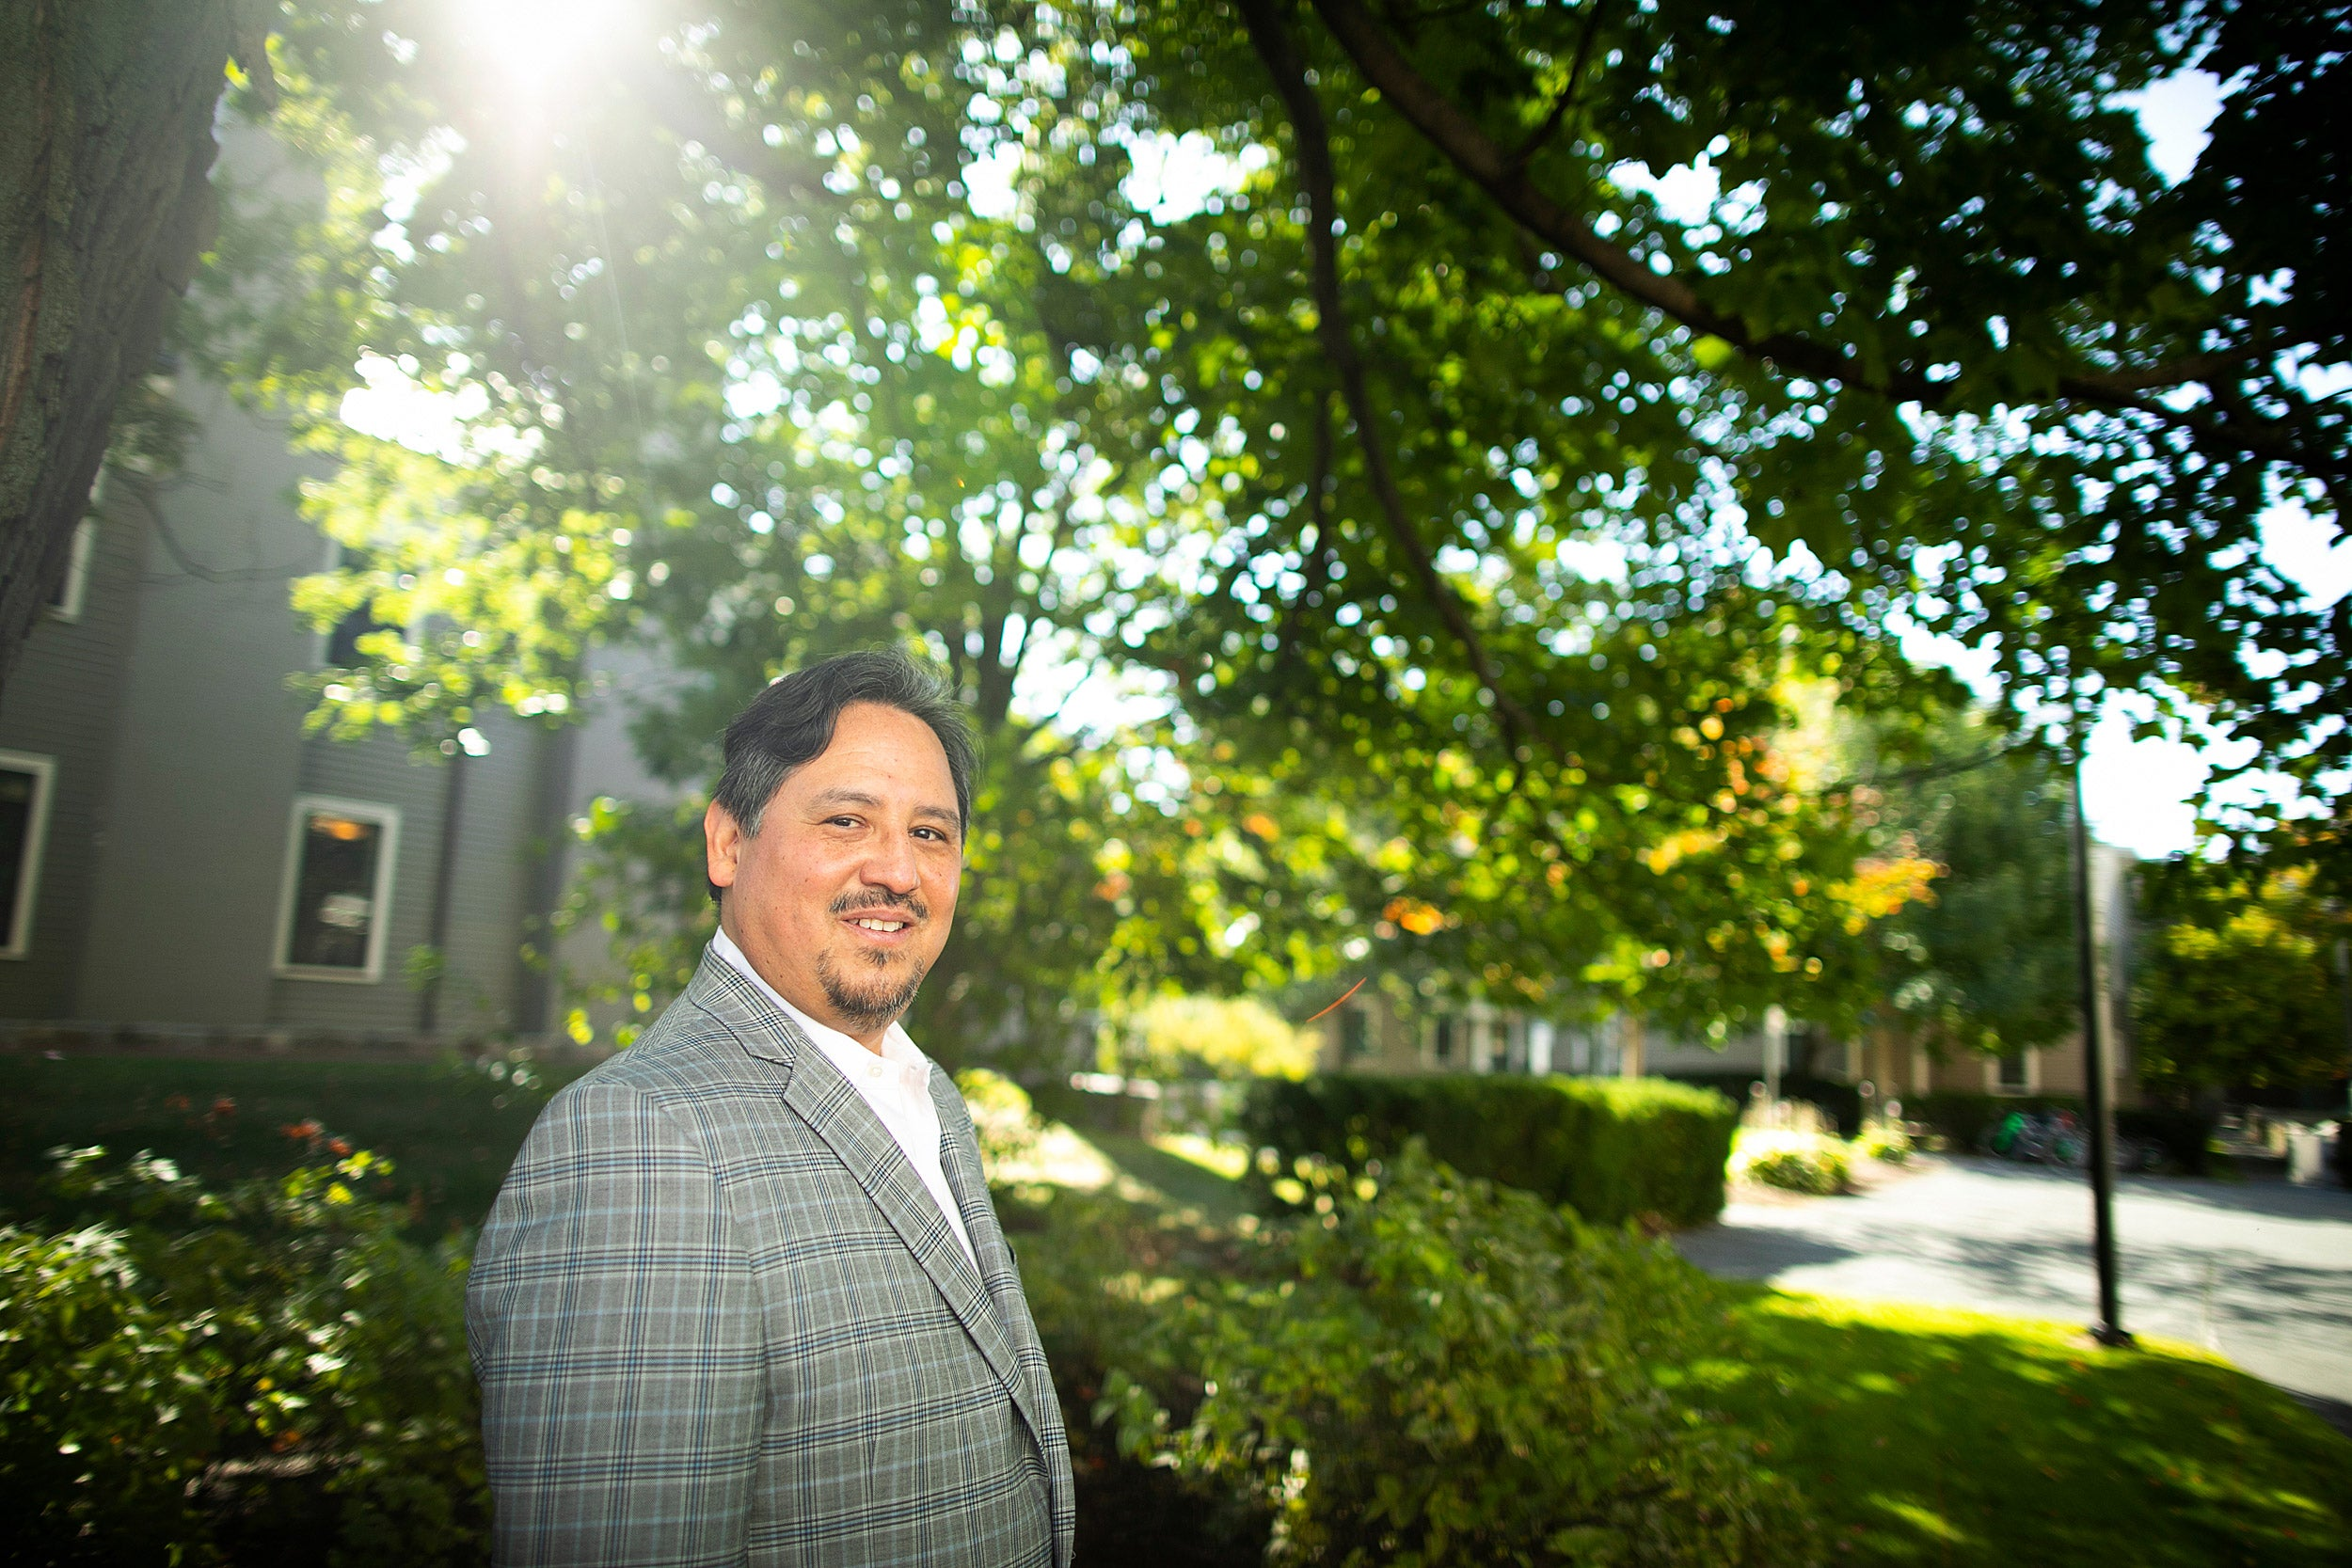 Joseph Gone discusses his new role as faculty director of the Harvard University Native American Program (HUNAP)